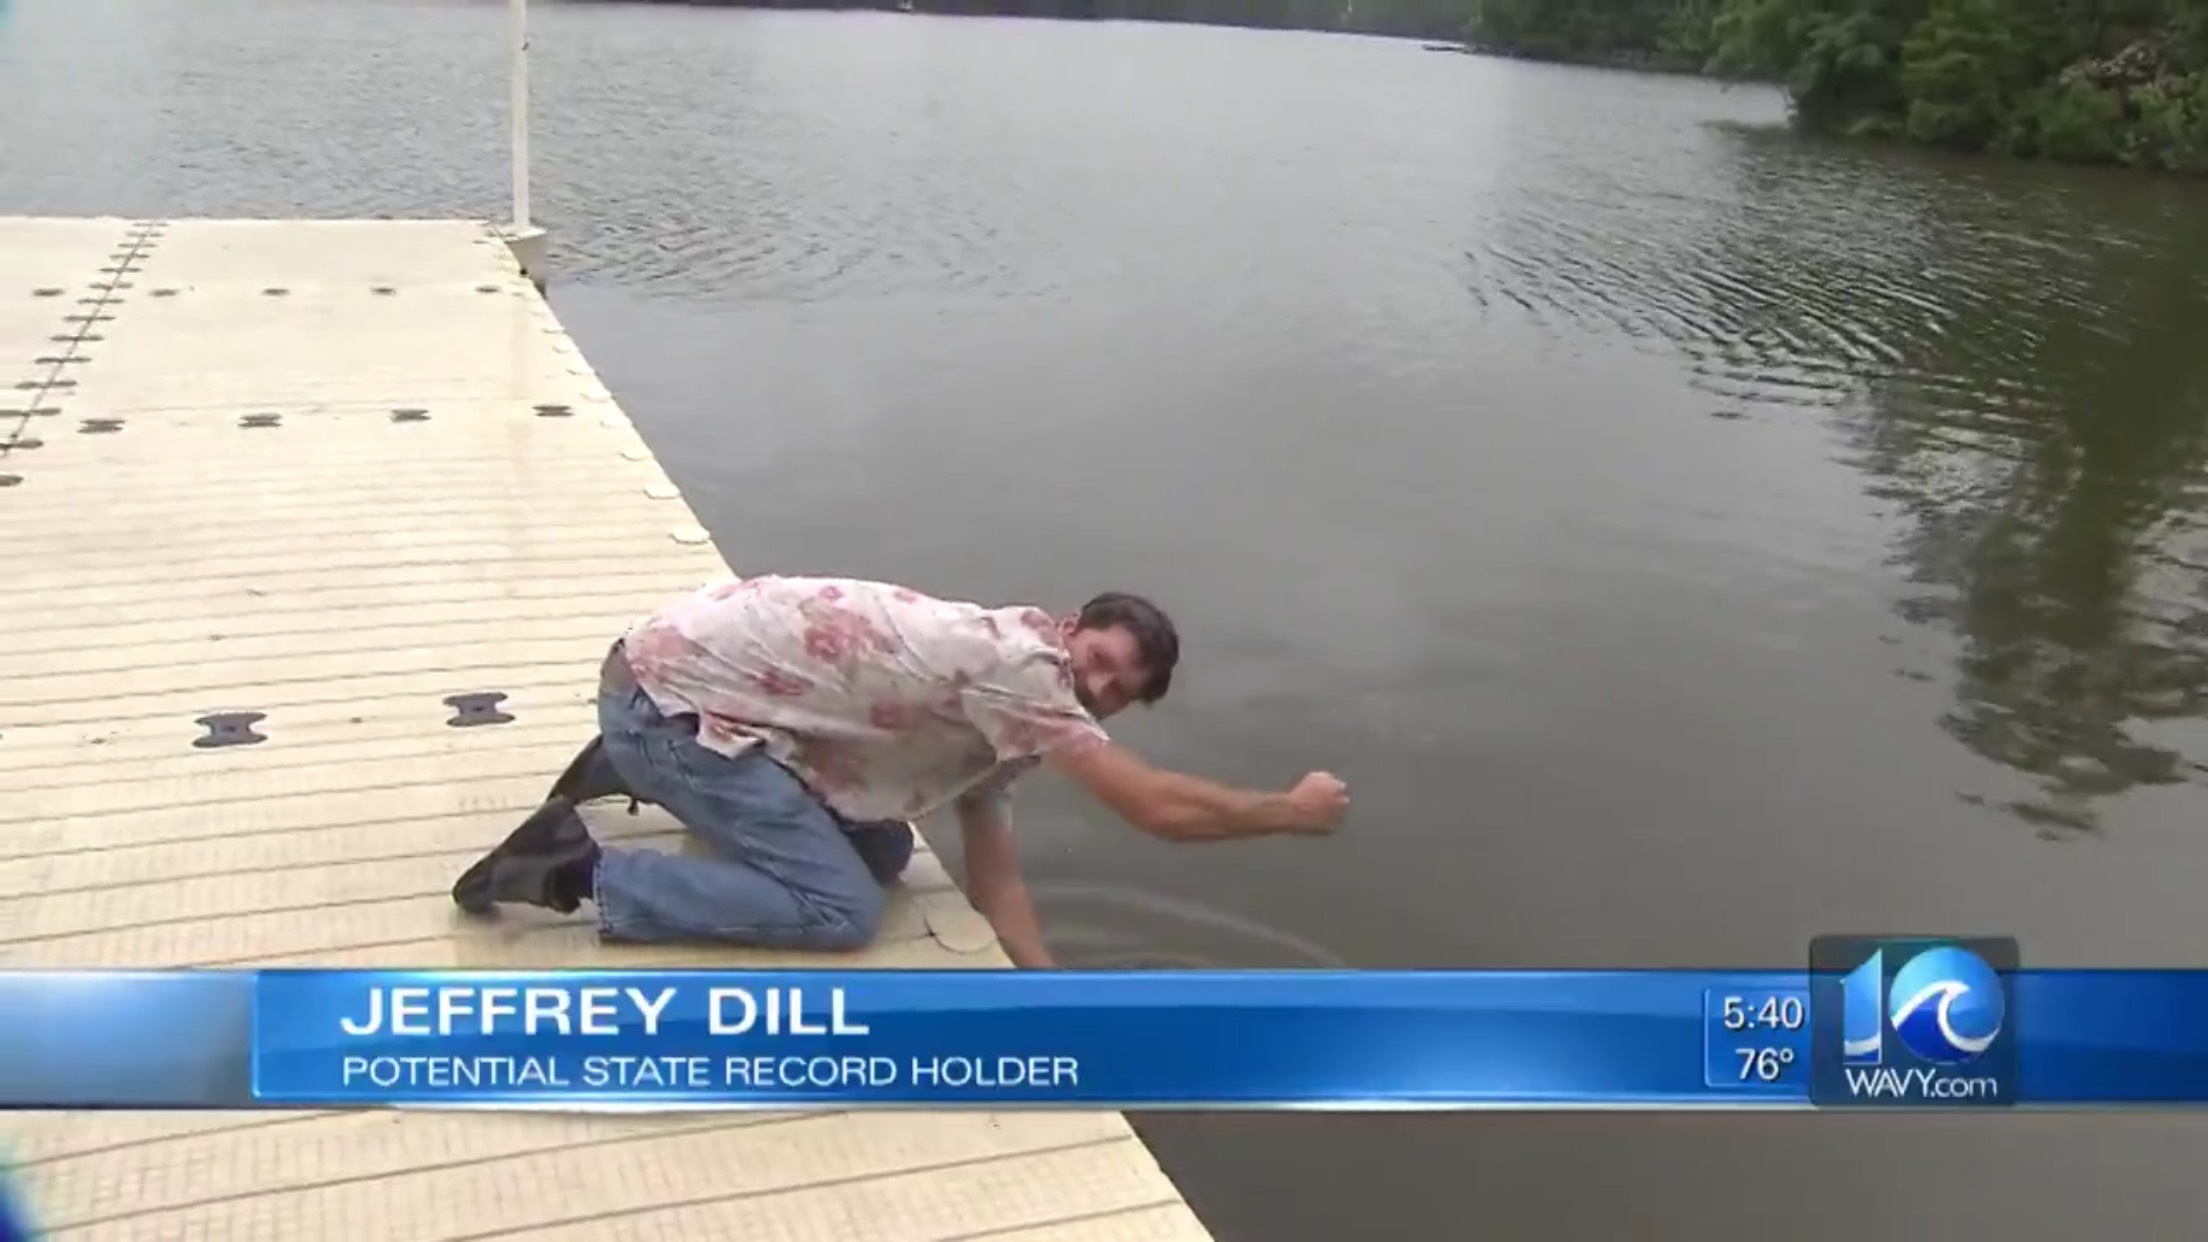 Jeffrey Dill: Potential State Record Holder